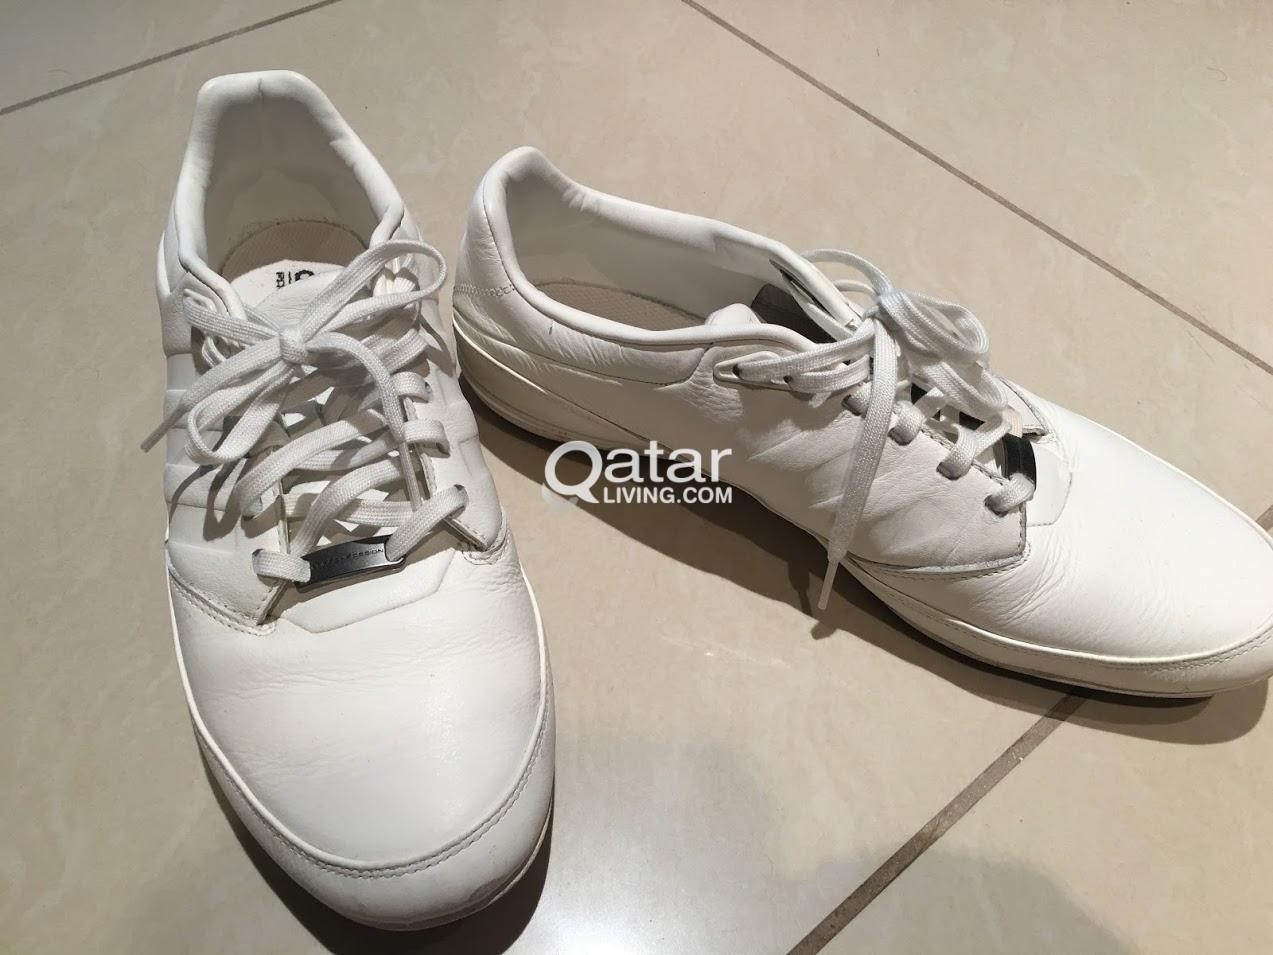 516828367b9ded SIZE 44 White Leather Adidas Porsche Design Typ 64 2.0 Shoes